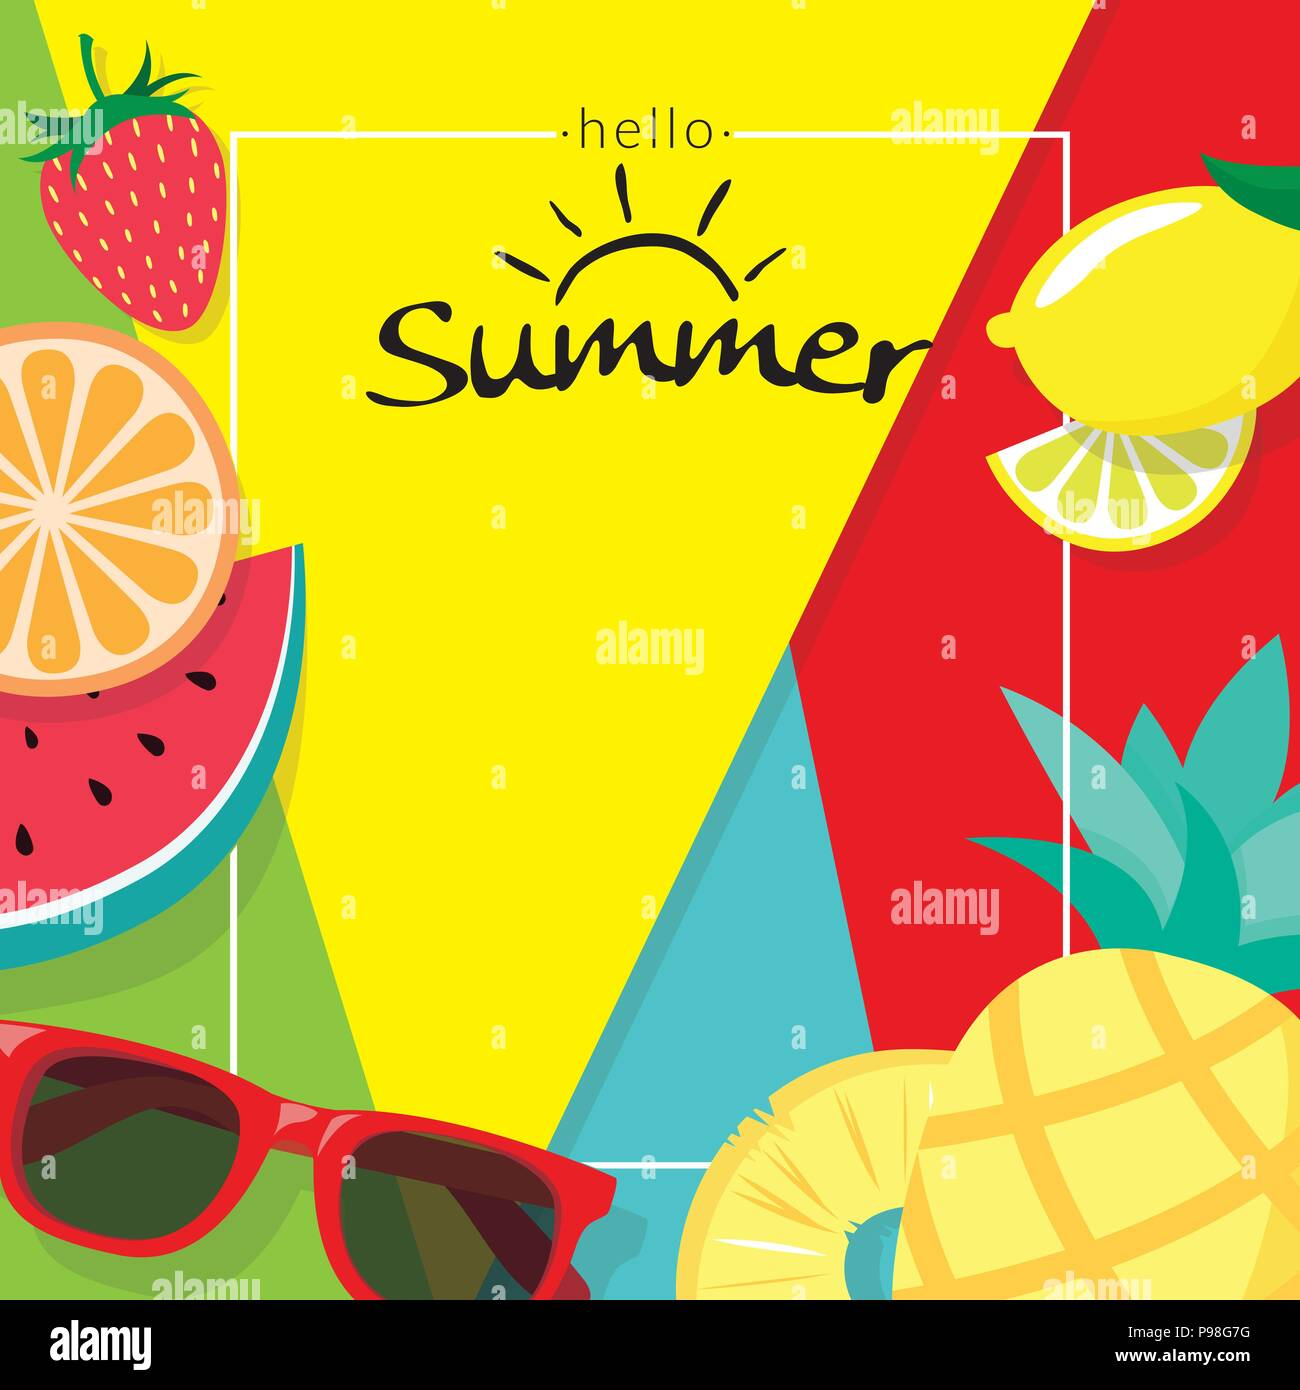 word hello summer with copy space template banner with pieces of